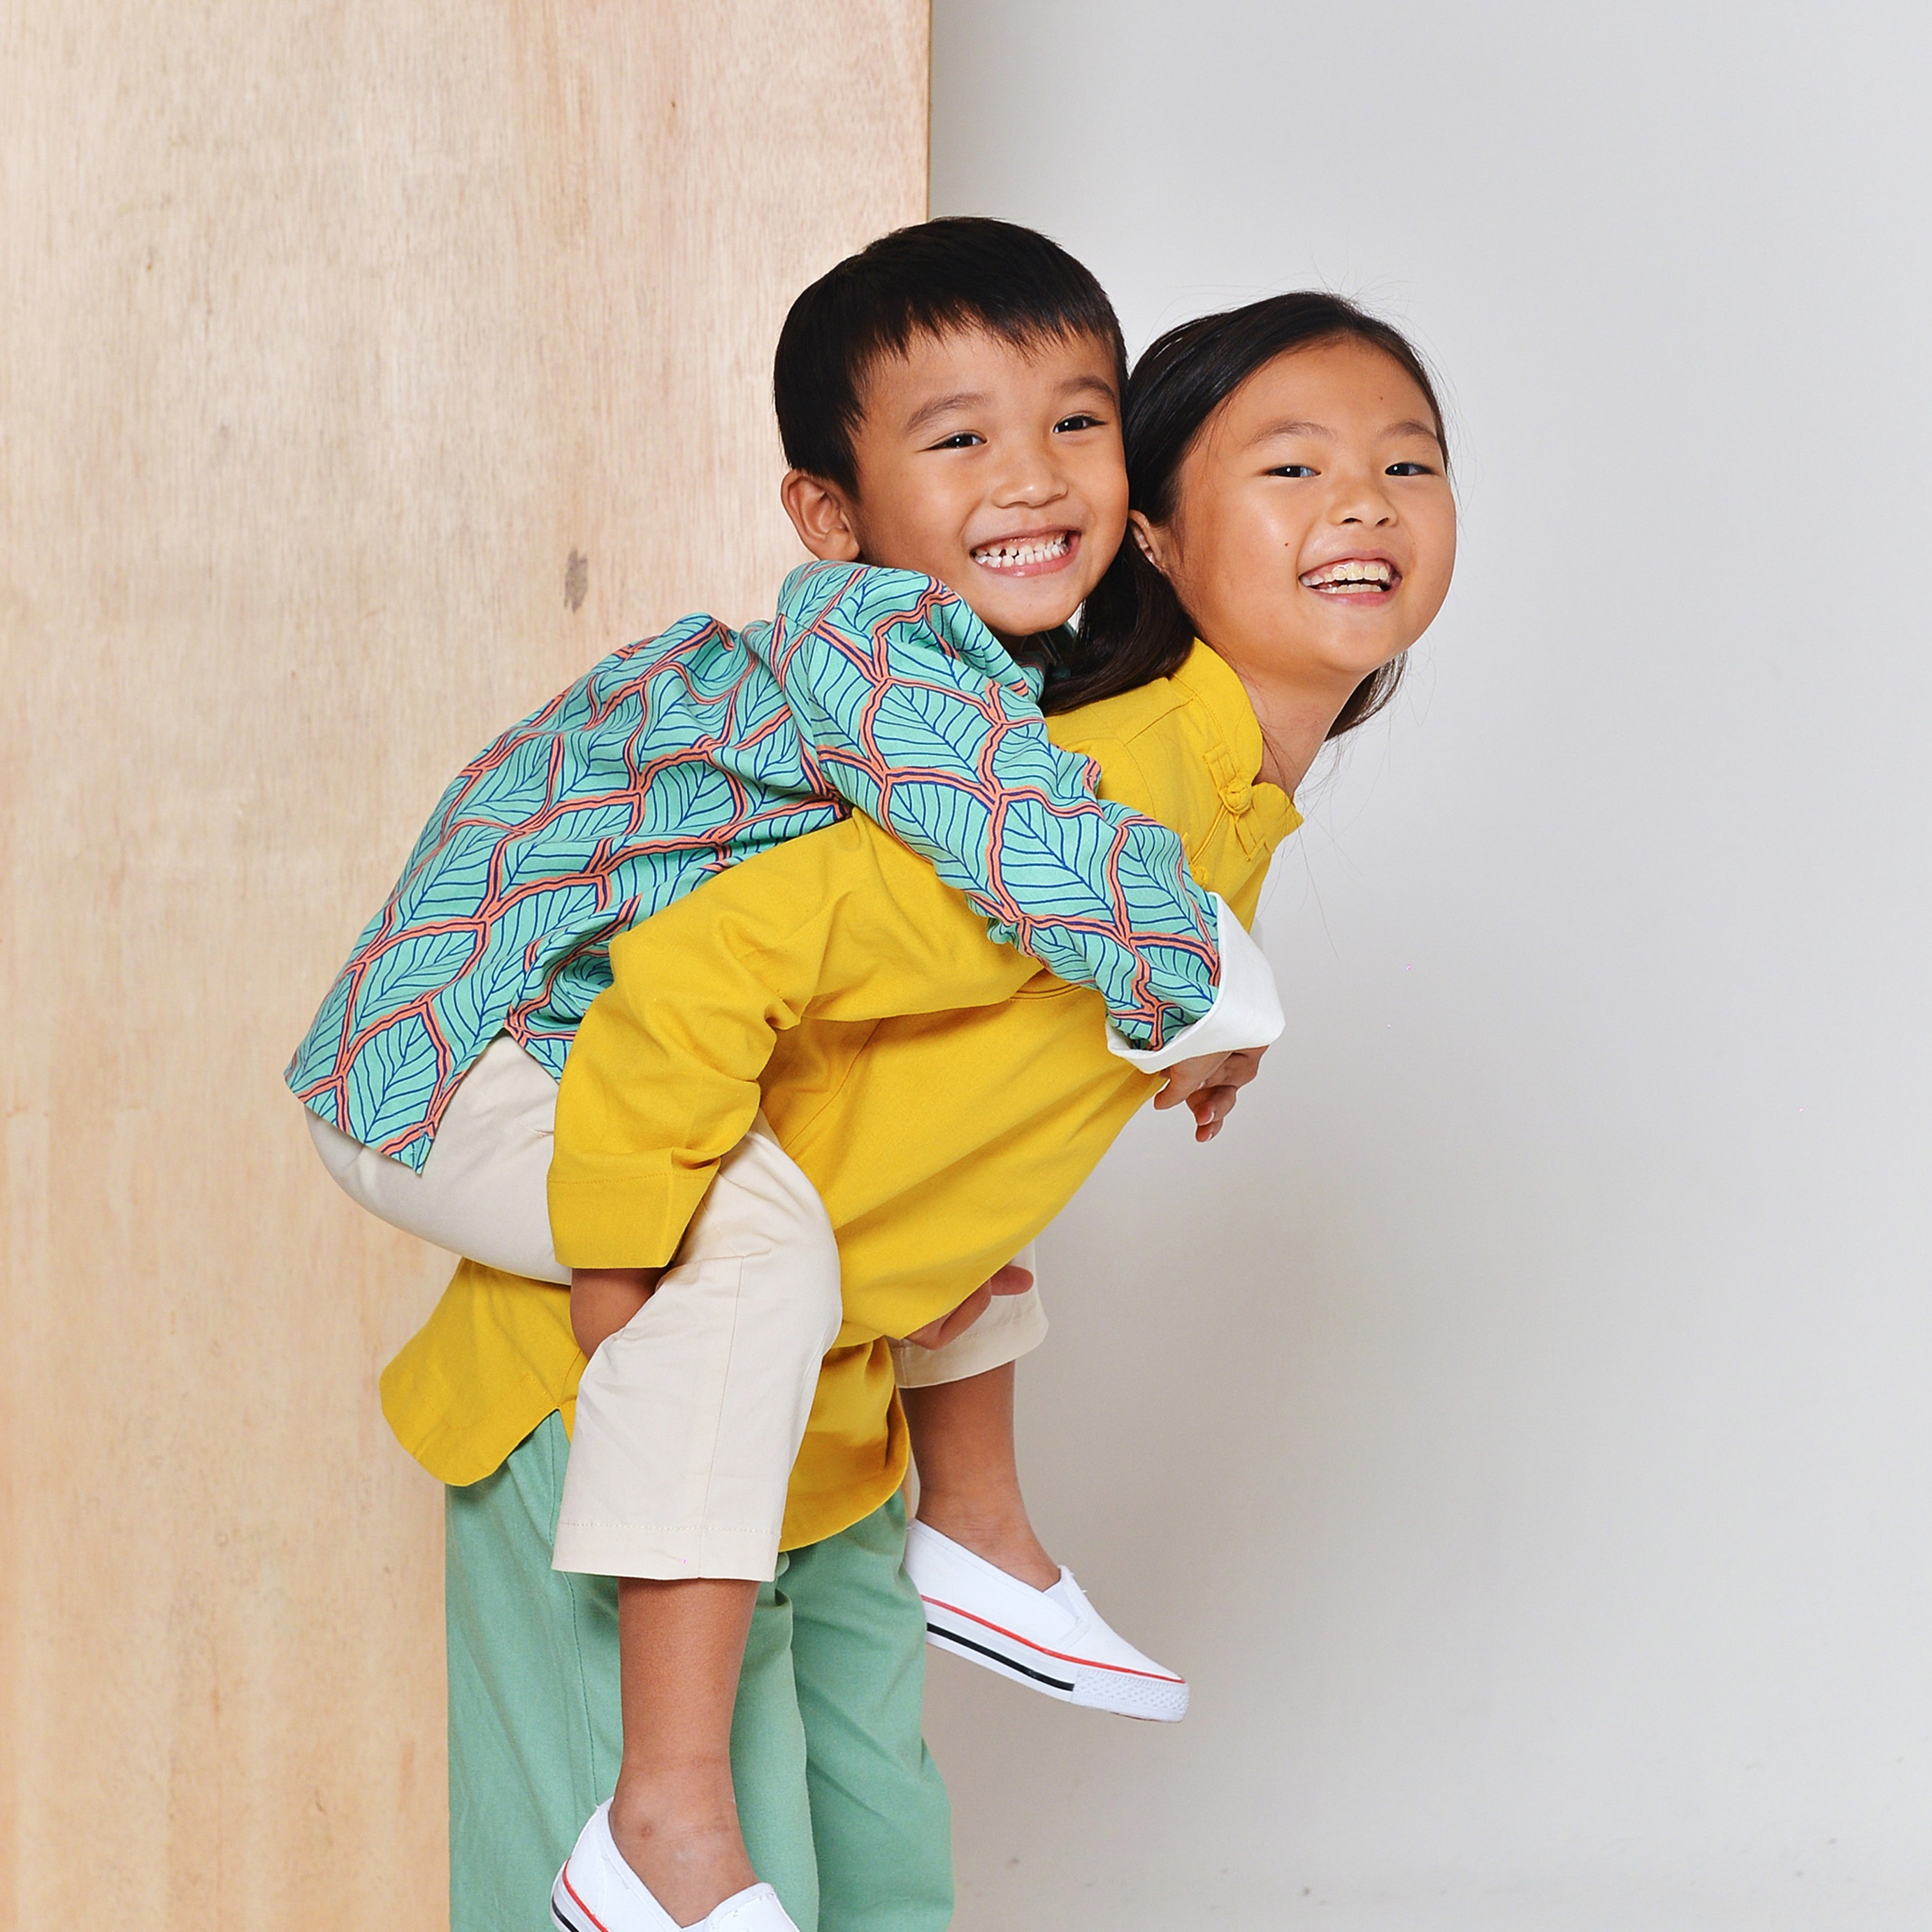 bc9335d2 10 Places To Shop For Children's Chinese New Year Outfits 2019 - Makchic